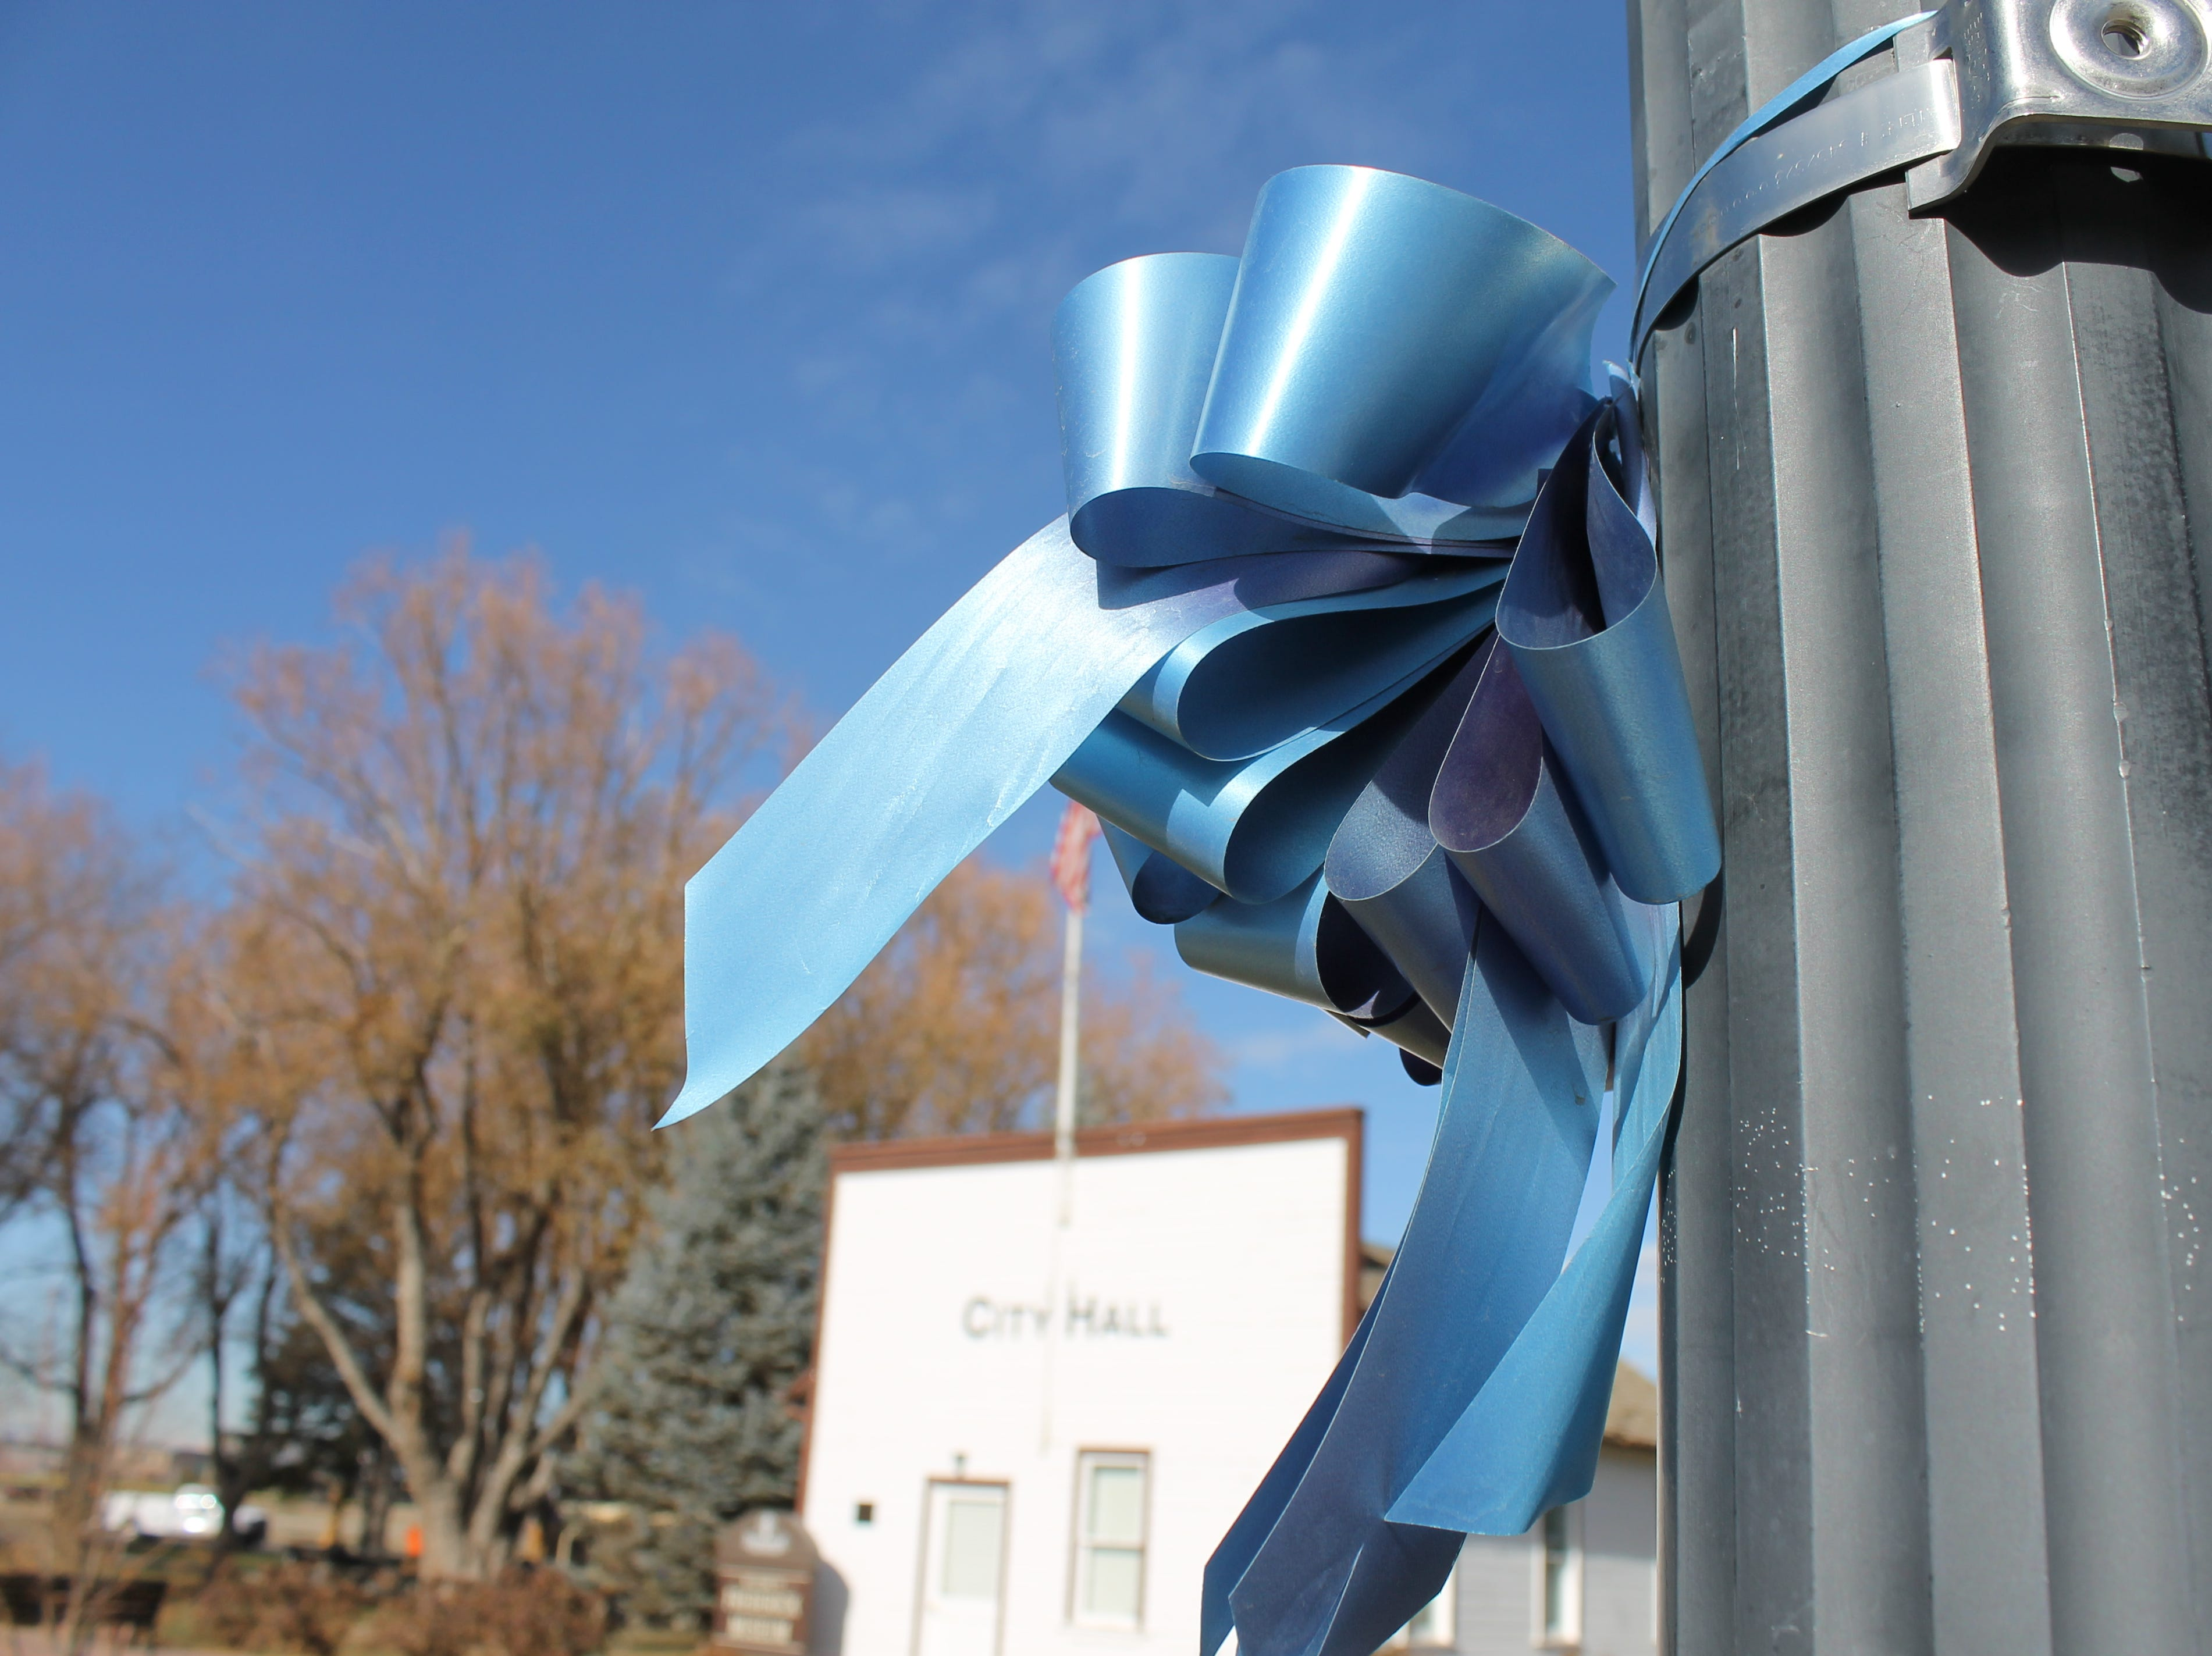 A faded ribbon hangs on a street lamp outside the Town of Frederick's City Hall Monday. Angela Wilson, the town's event coordinator, handed ribbons out in September to honor Shanann Watts and her two young daughters, Bella and Celeste. Some ribbons remain.